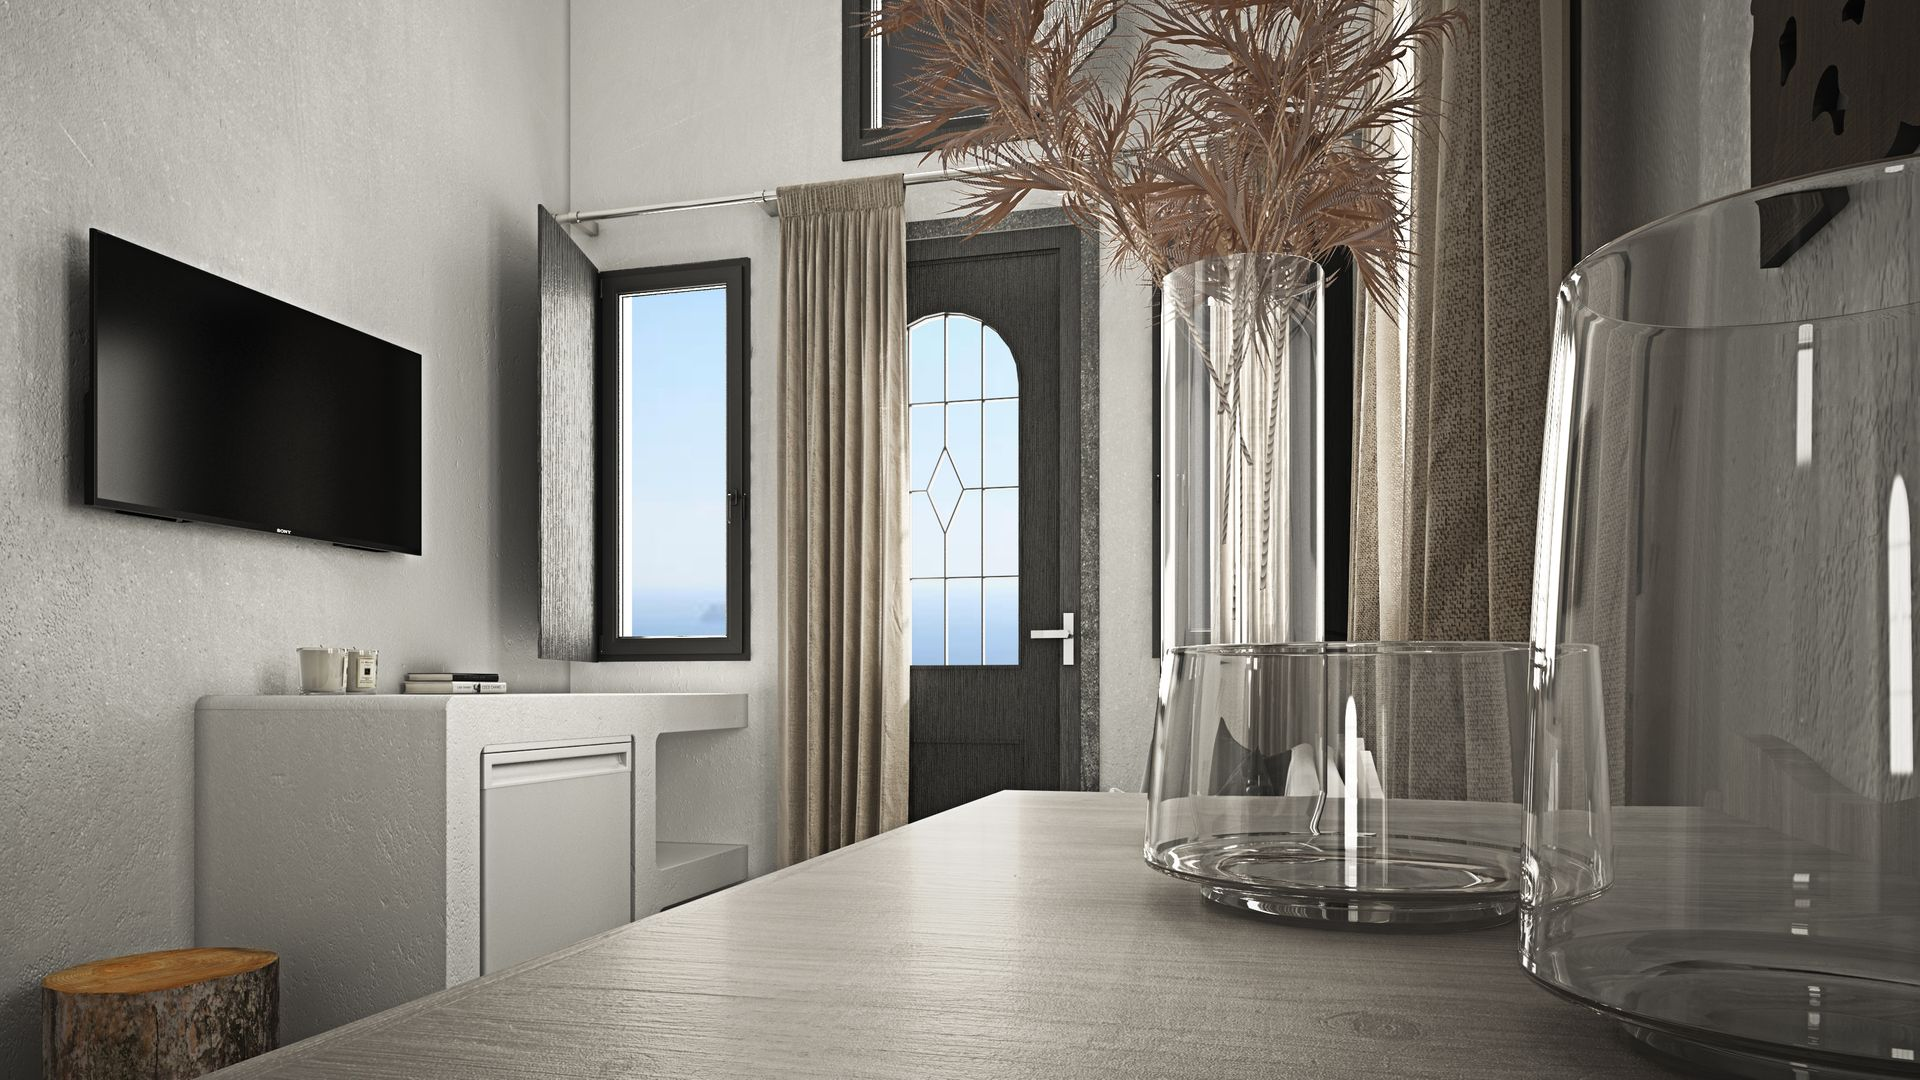 STANDARD ROOM WITH CALDERA VIEW